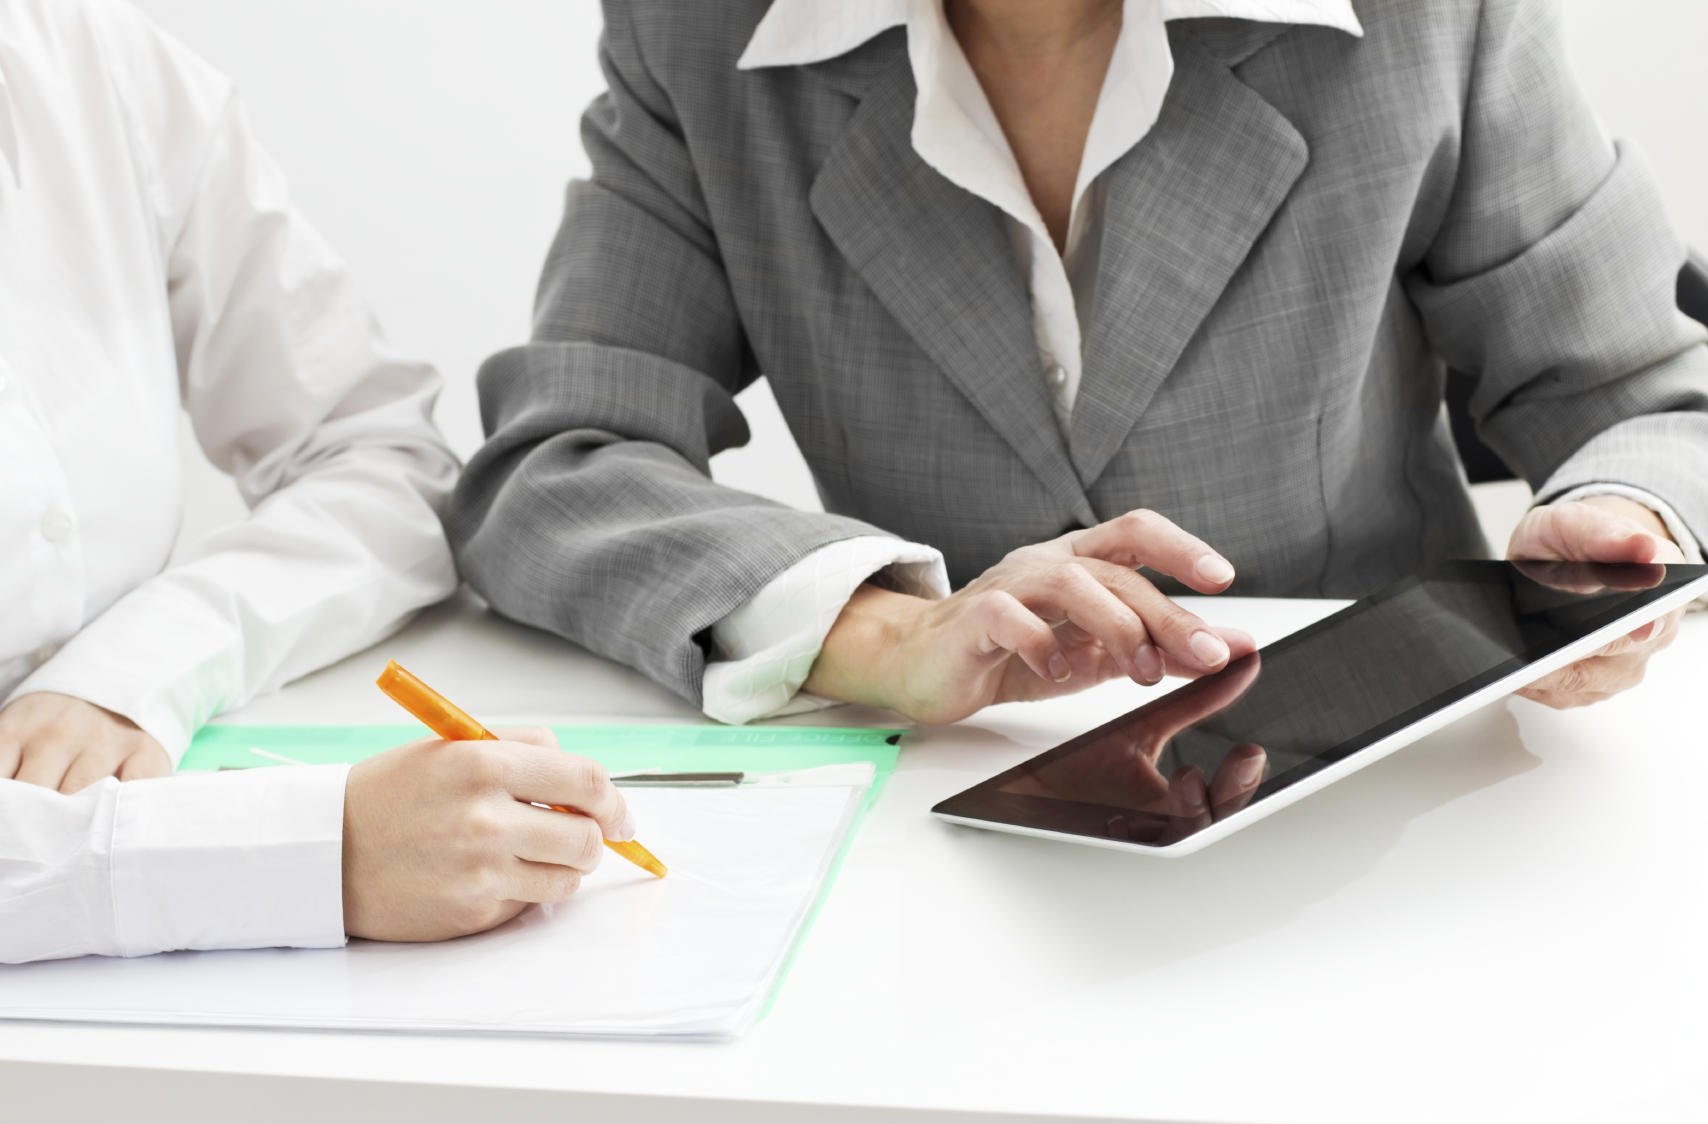 Professionals using tablets